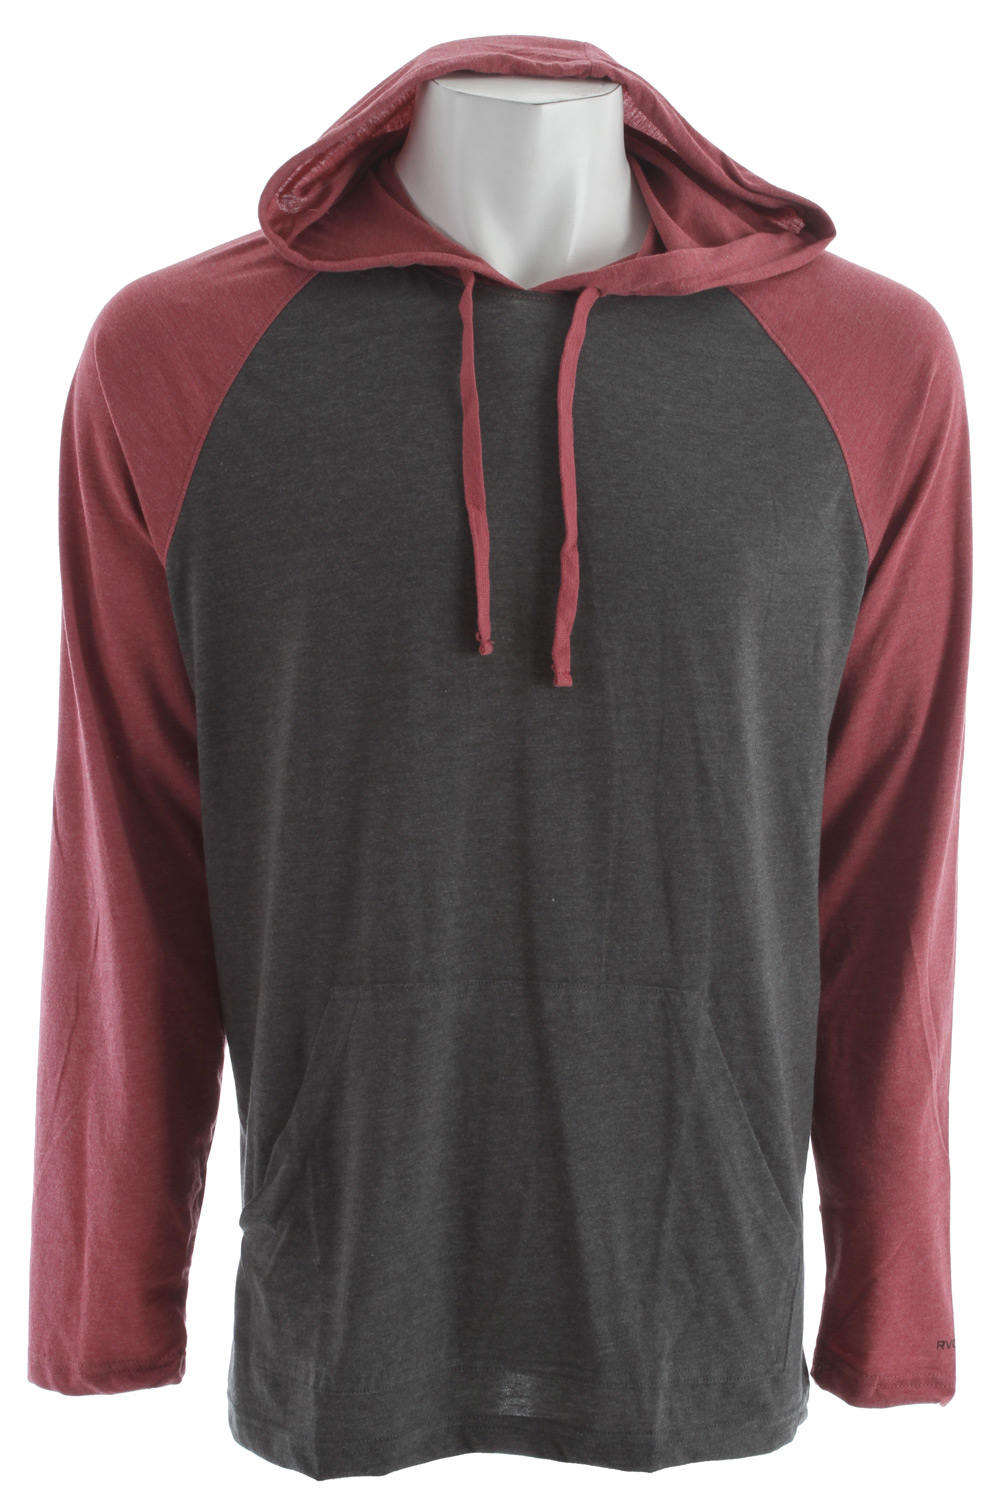 Key Features of the RVCA Castro Raglan Shirt: Regular fit 50% cotton/50% polyester jersey Hooded raglan with front pouch pocket RVCA screenprinted logo at wearer's left sleeve Contrast hood, sleeves and drawcord - $23.95